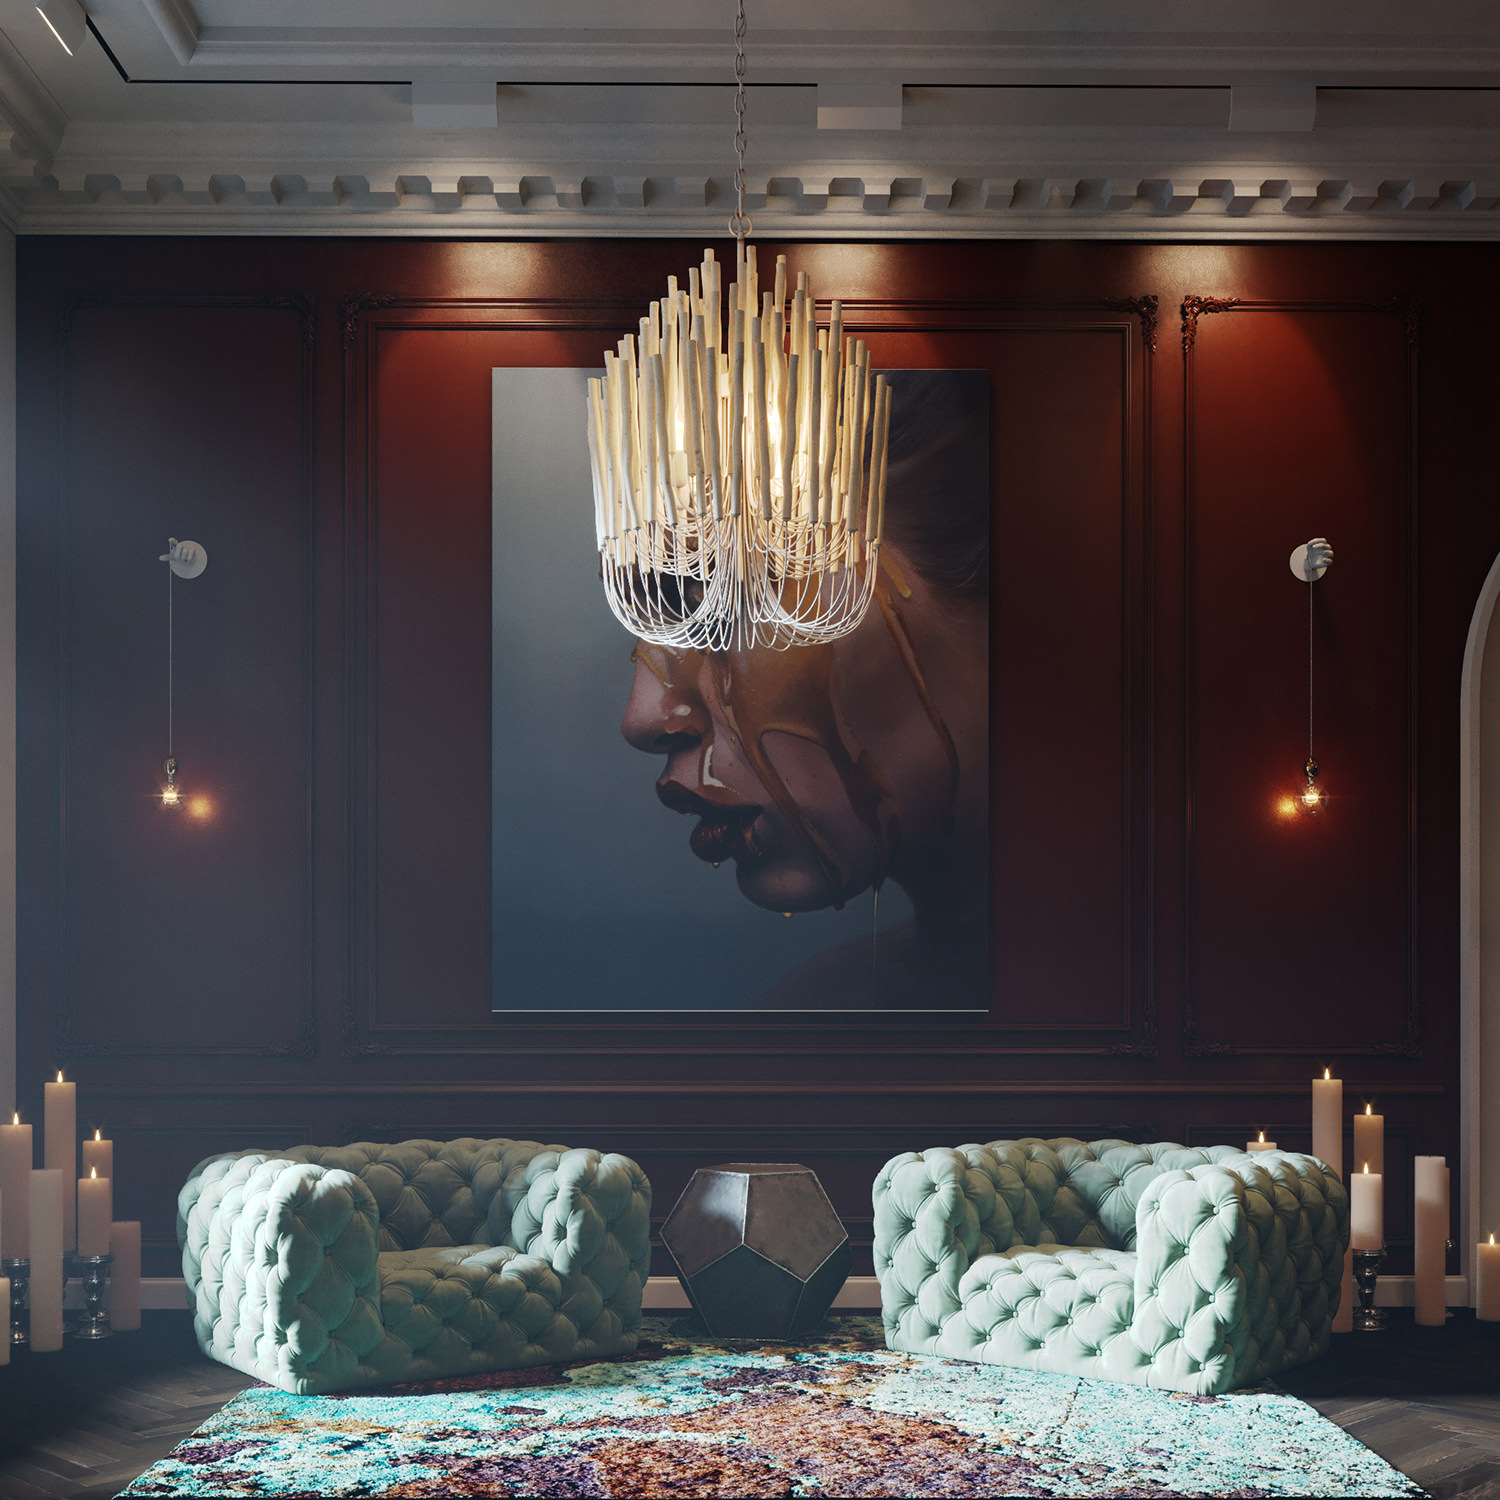 Architectural Visualization of a «Rusty Moss» carpet and designer furniture in hotel lounge setting